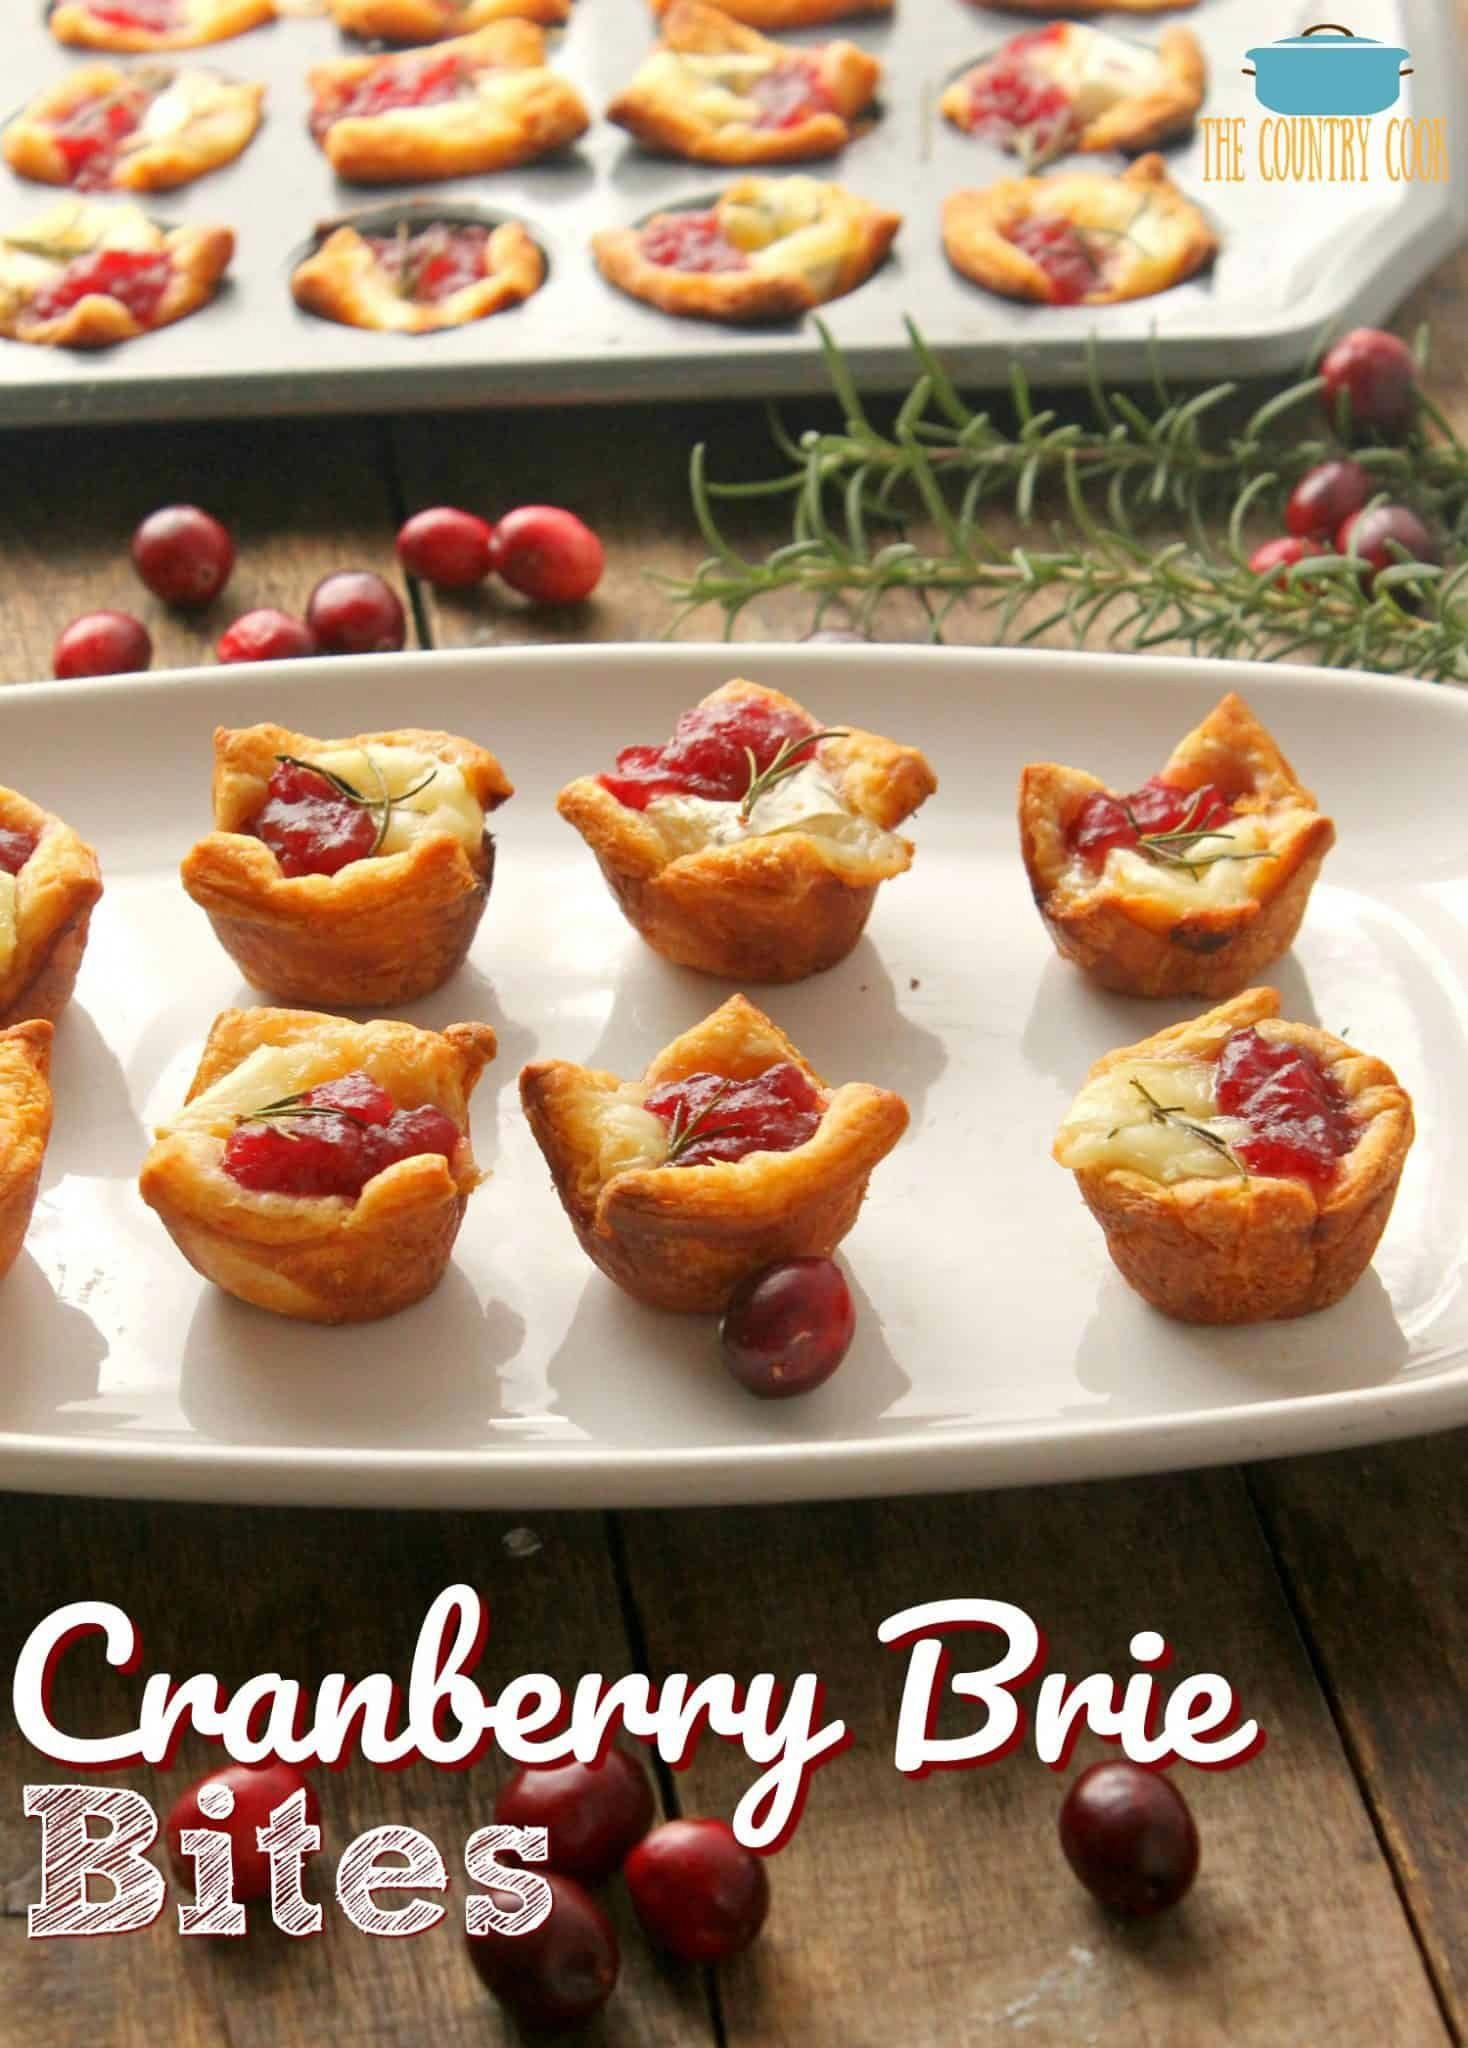 Crescent Roll Cheese Danishes The Country Cook - Crescent Roll Cheese danishes are a shortcut version of our favorite bakery danishes! Simple but delicious. Dessert or breakfast! #crescentrollcheesedanishes #breakfast #dessert #appetizers